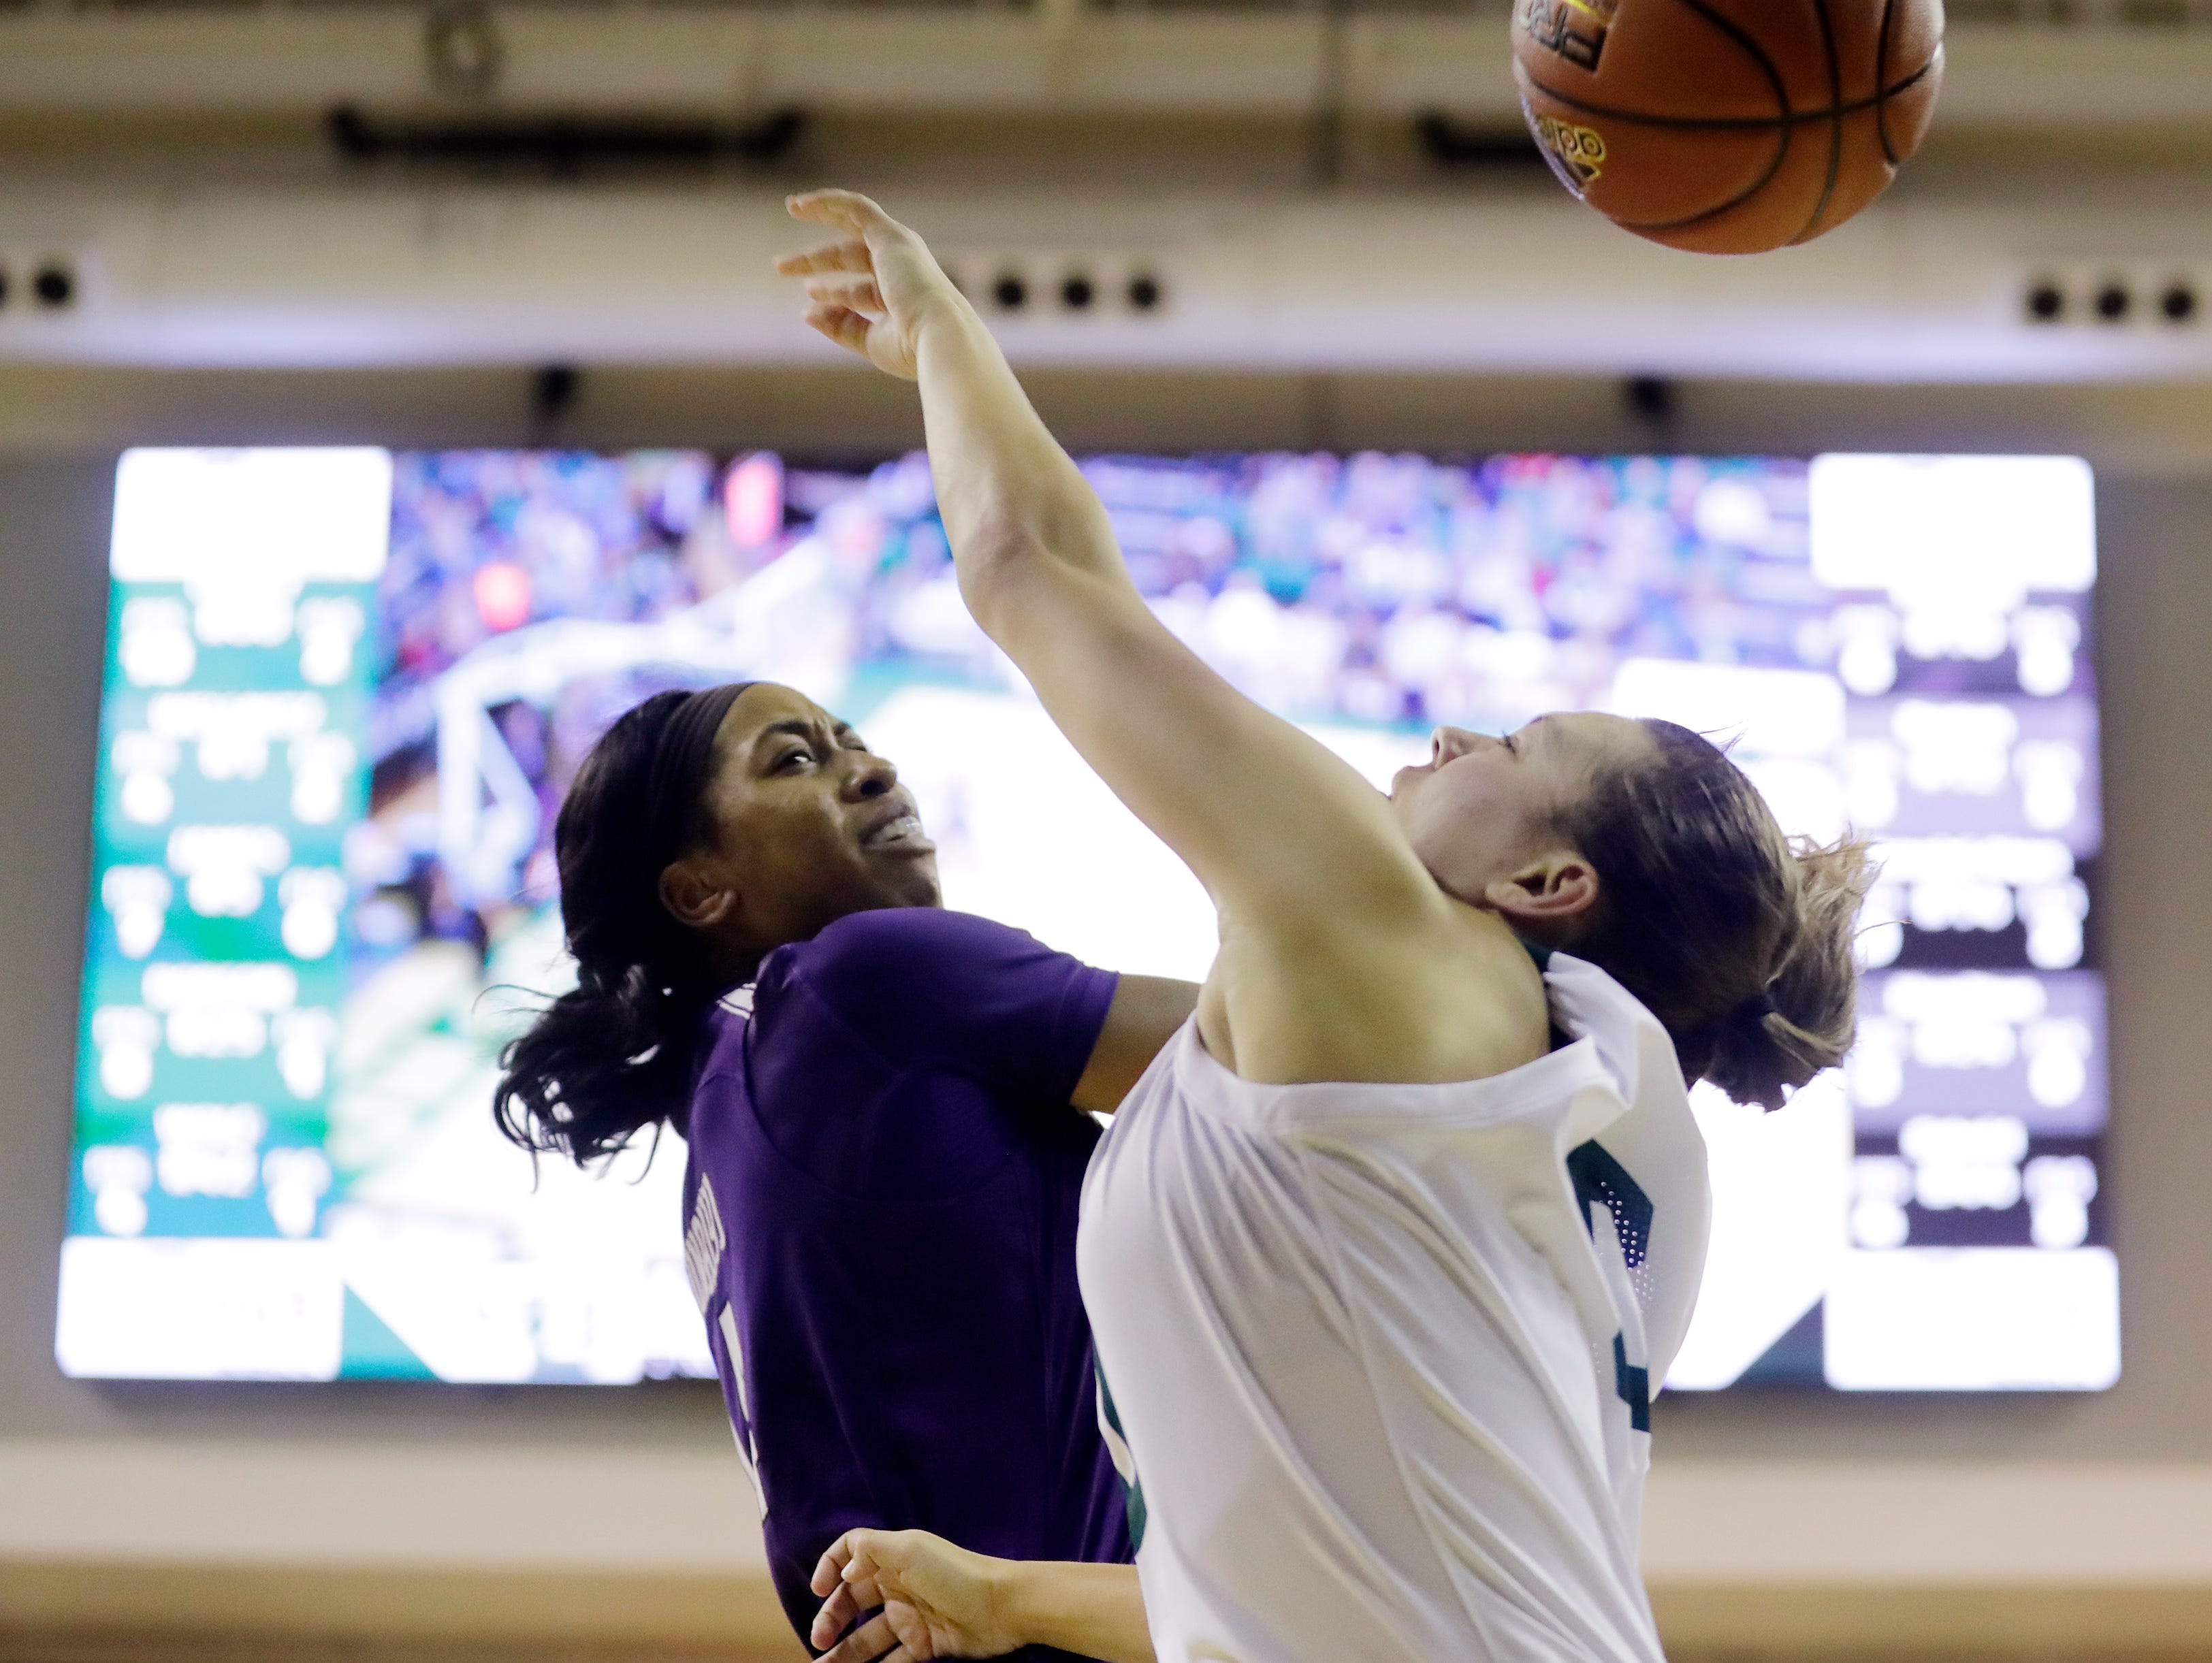 Green Bay Phoenix guard Hailey Oskey (0) has a shot blocked by Northwestern Wildcats forward Pallas Kunaiyi-Akpanah (14) in a women's NCAA basketball game at the Kress Center on Tuesday, November 6, 2018 in Green Bay, Wis.